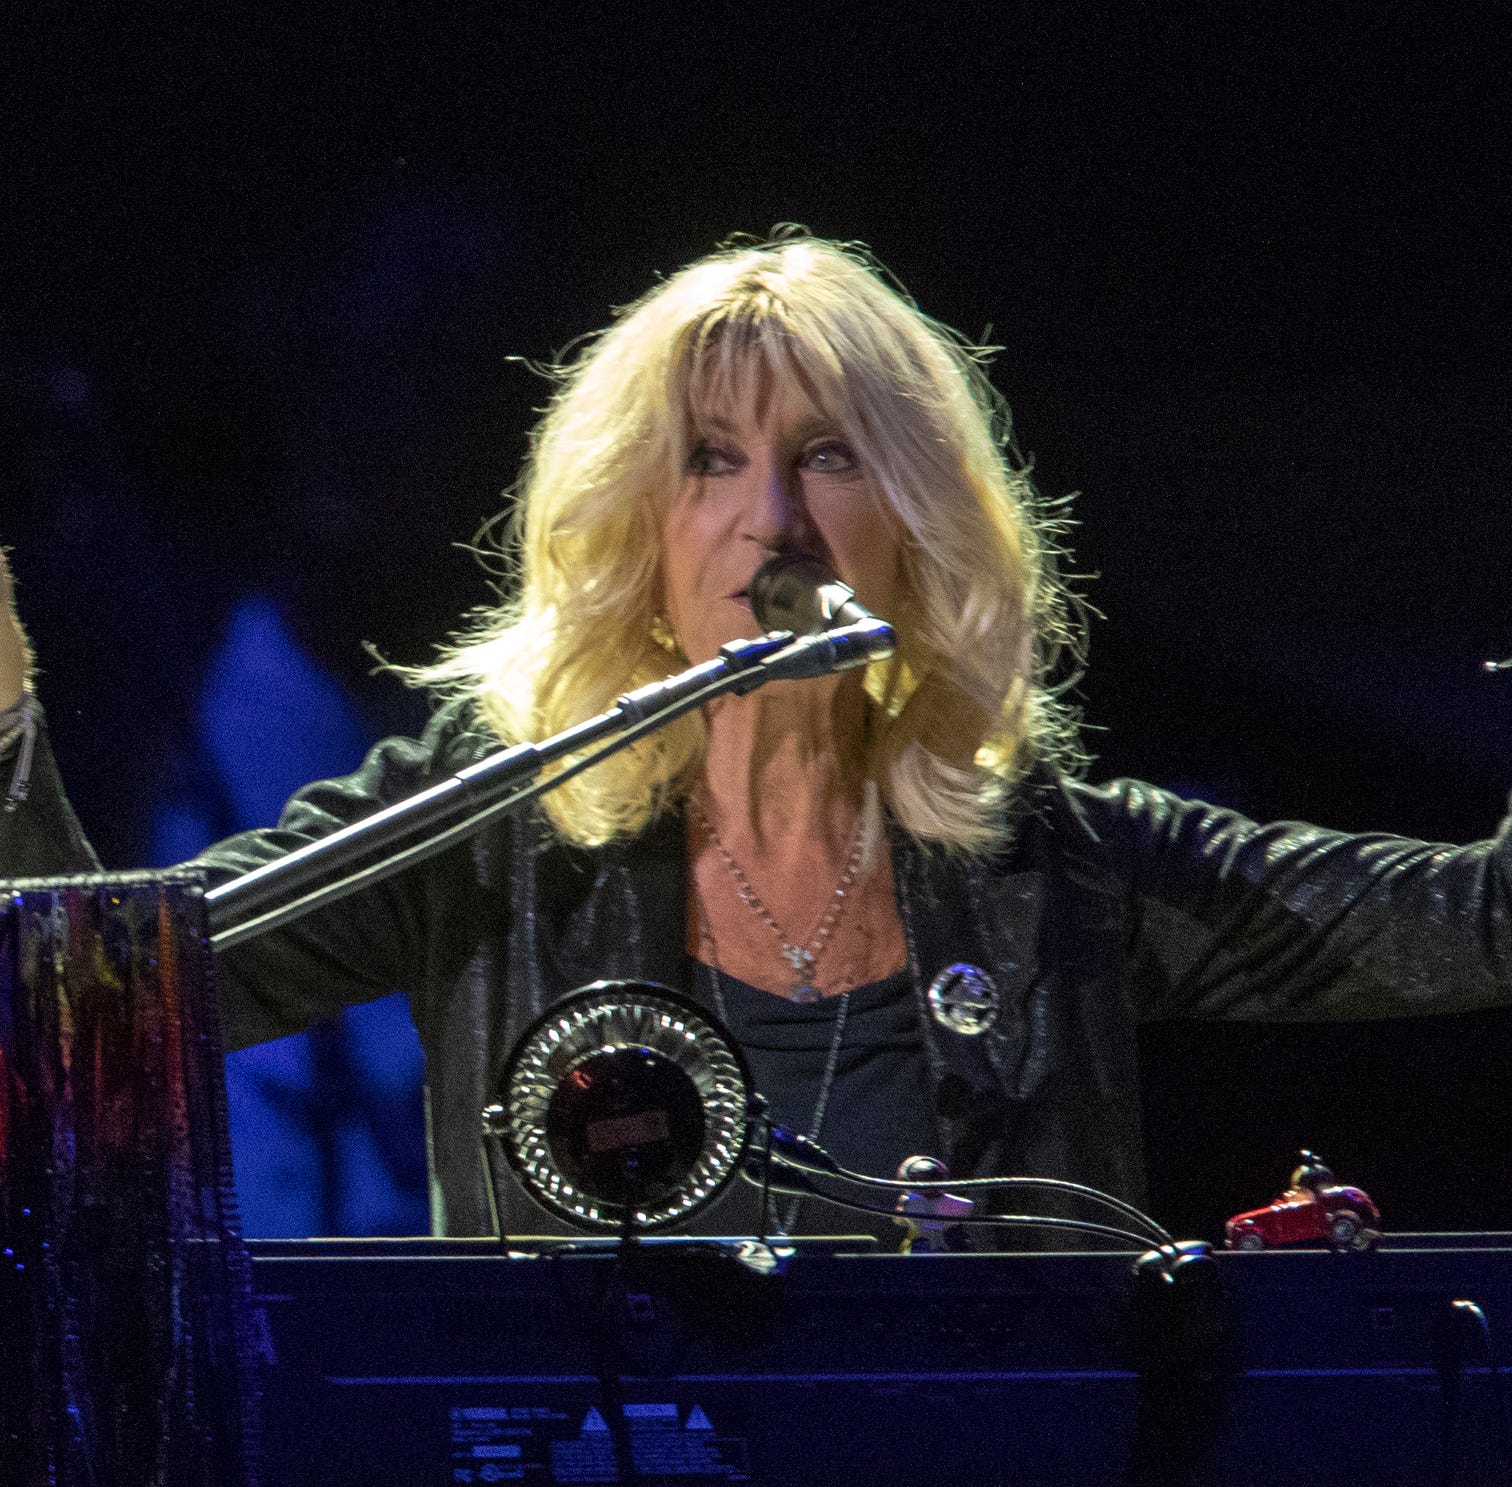 5 ways Fleetwood Mac gave Indianapolis a career overview plus a bit of Tom Petty closure